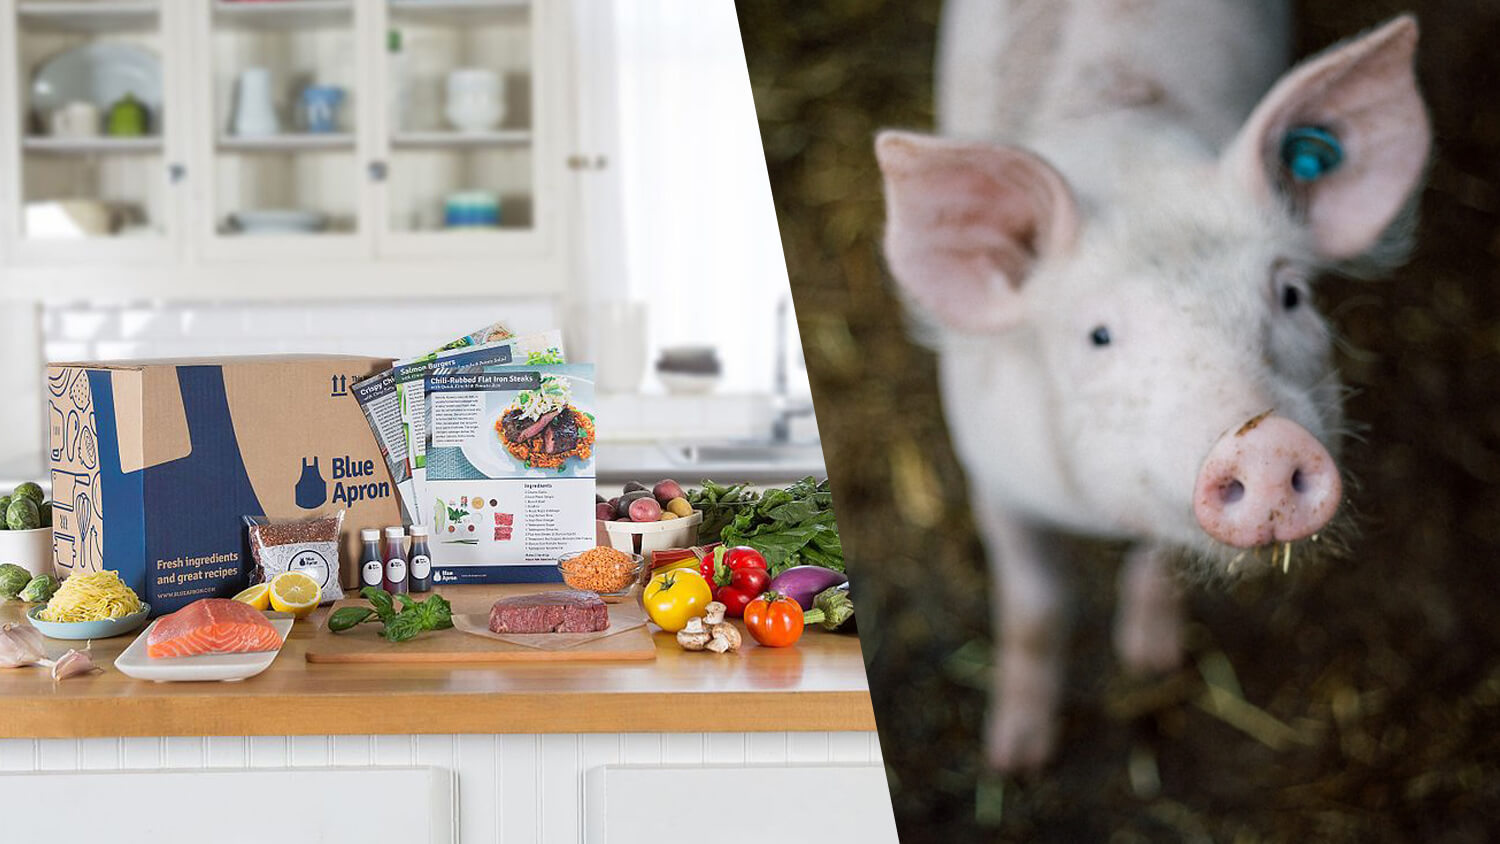 Meal Kit Company Blue Apron to Ditch Gestation Crates for Mother Pigs